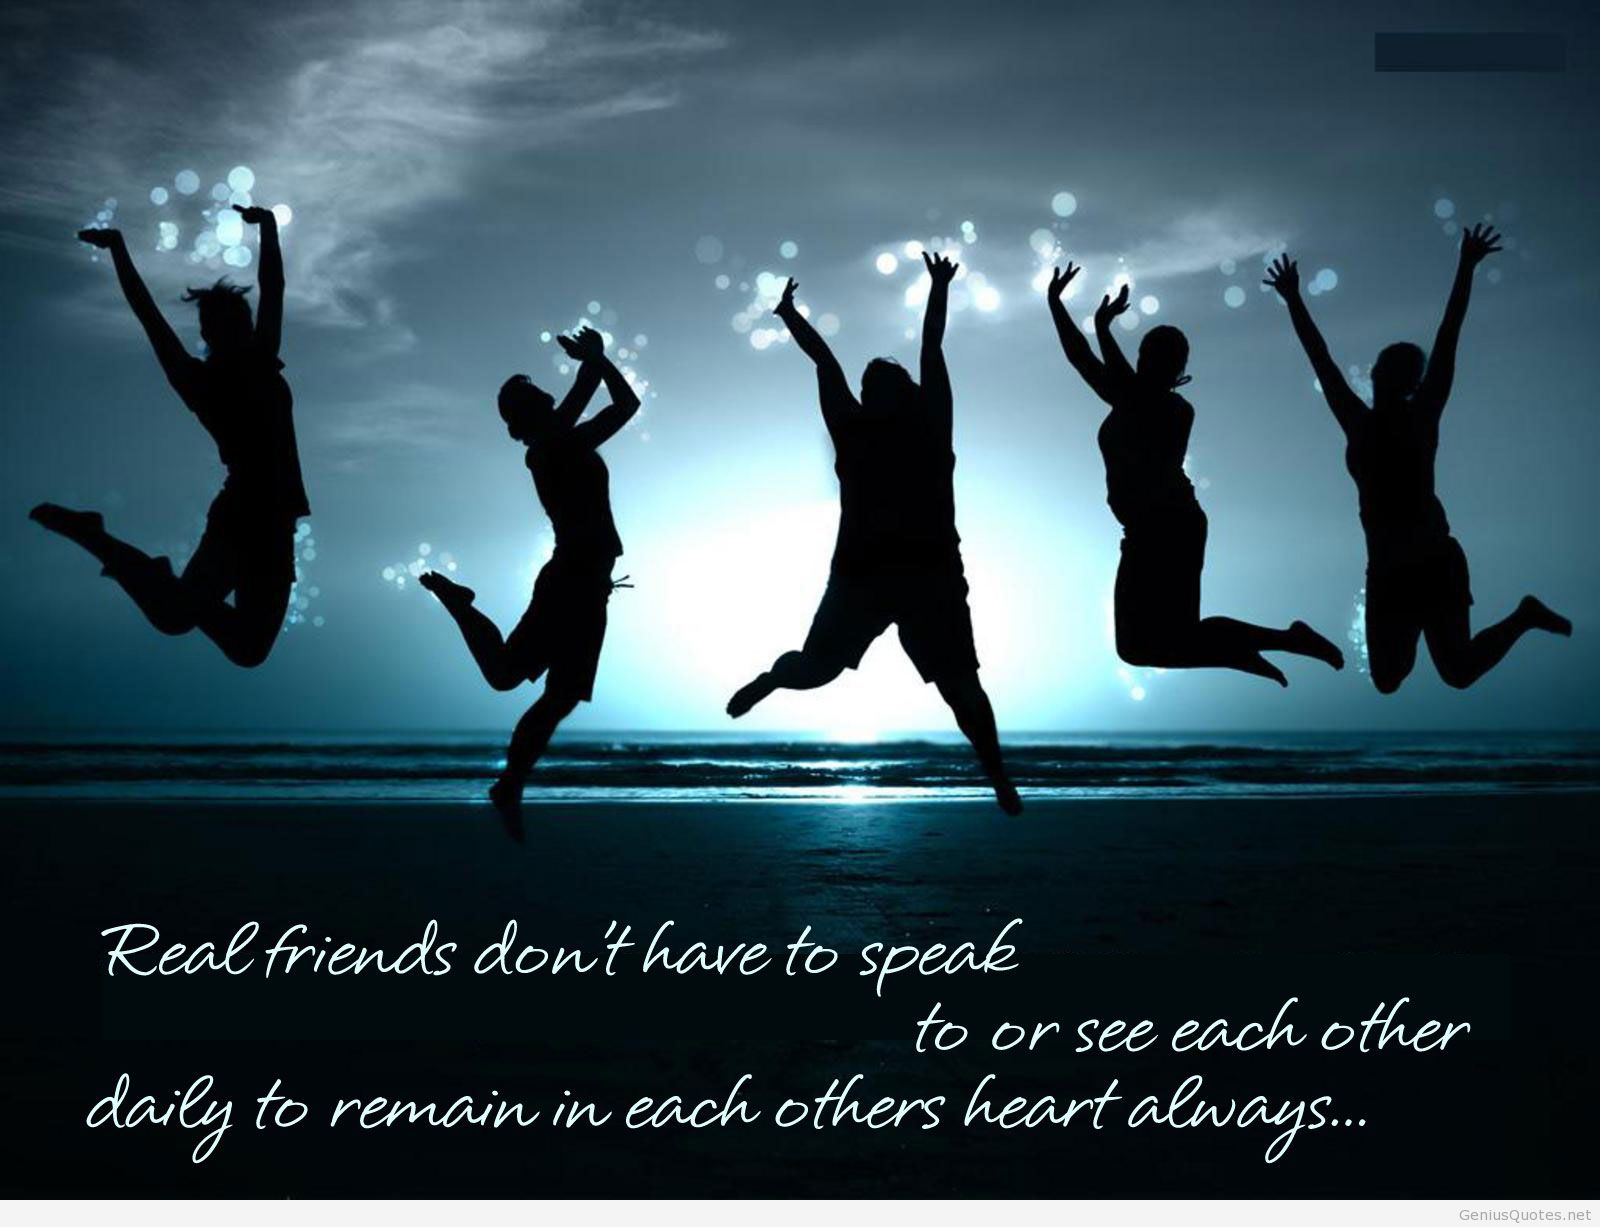 Free Download Friends Forever Quotes And Images For You All For All My Bestfriends 1600x1227 For Your Desktop Mobile Tablet Explore 48 Friend Wallpaper And Images Friendship Wallpaper Best